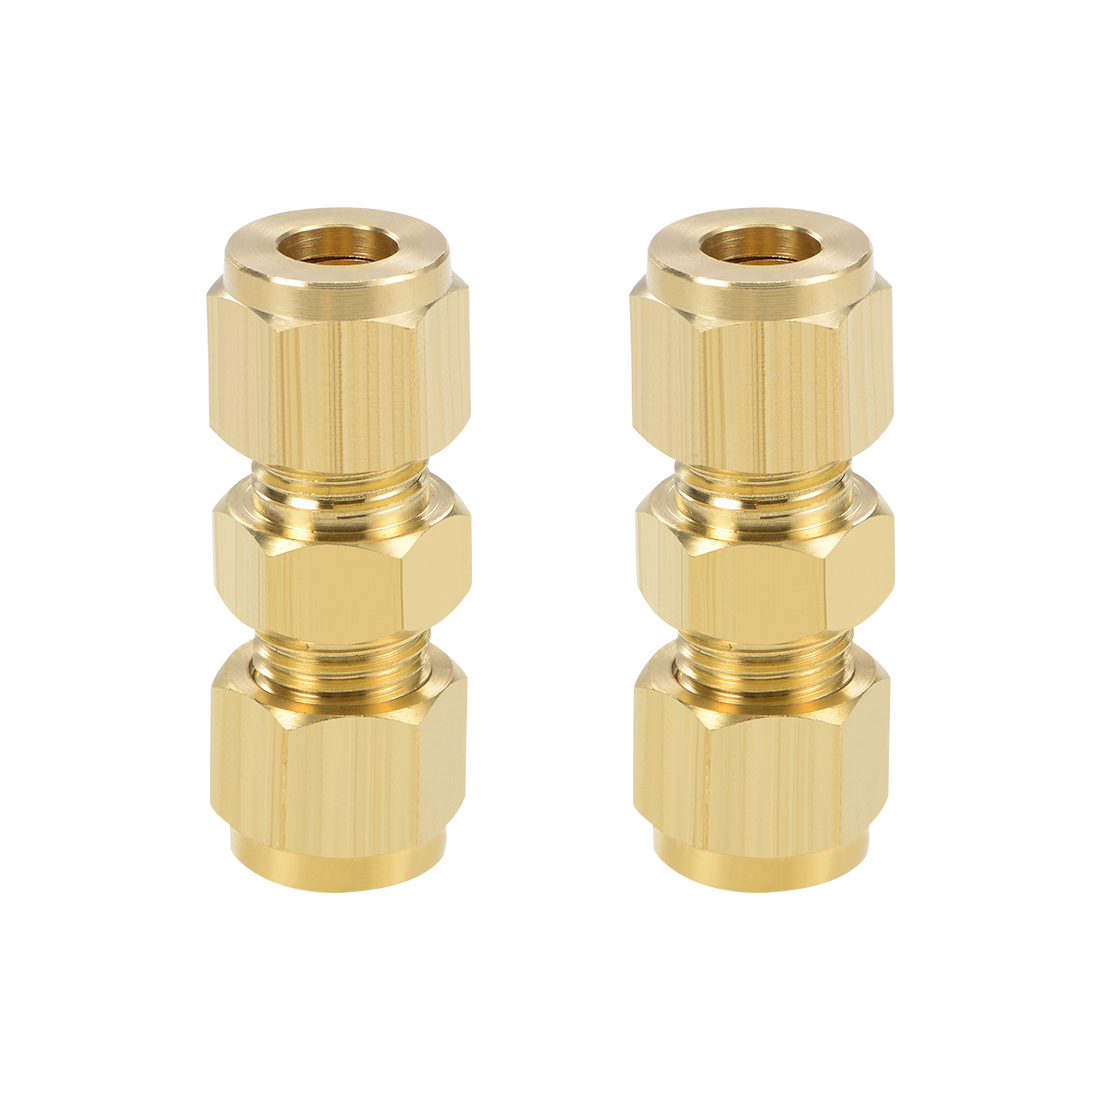 Brass Compression Tube Fitting 8mm OD Straight Pipe Adapter for Irrigation 2pcs